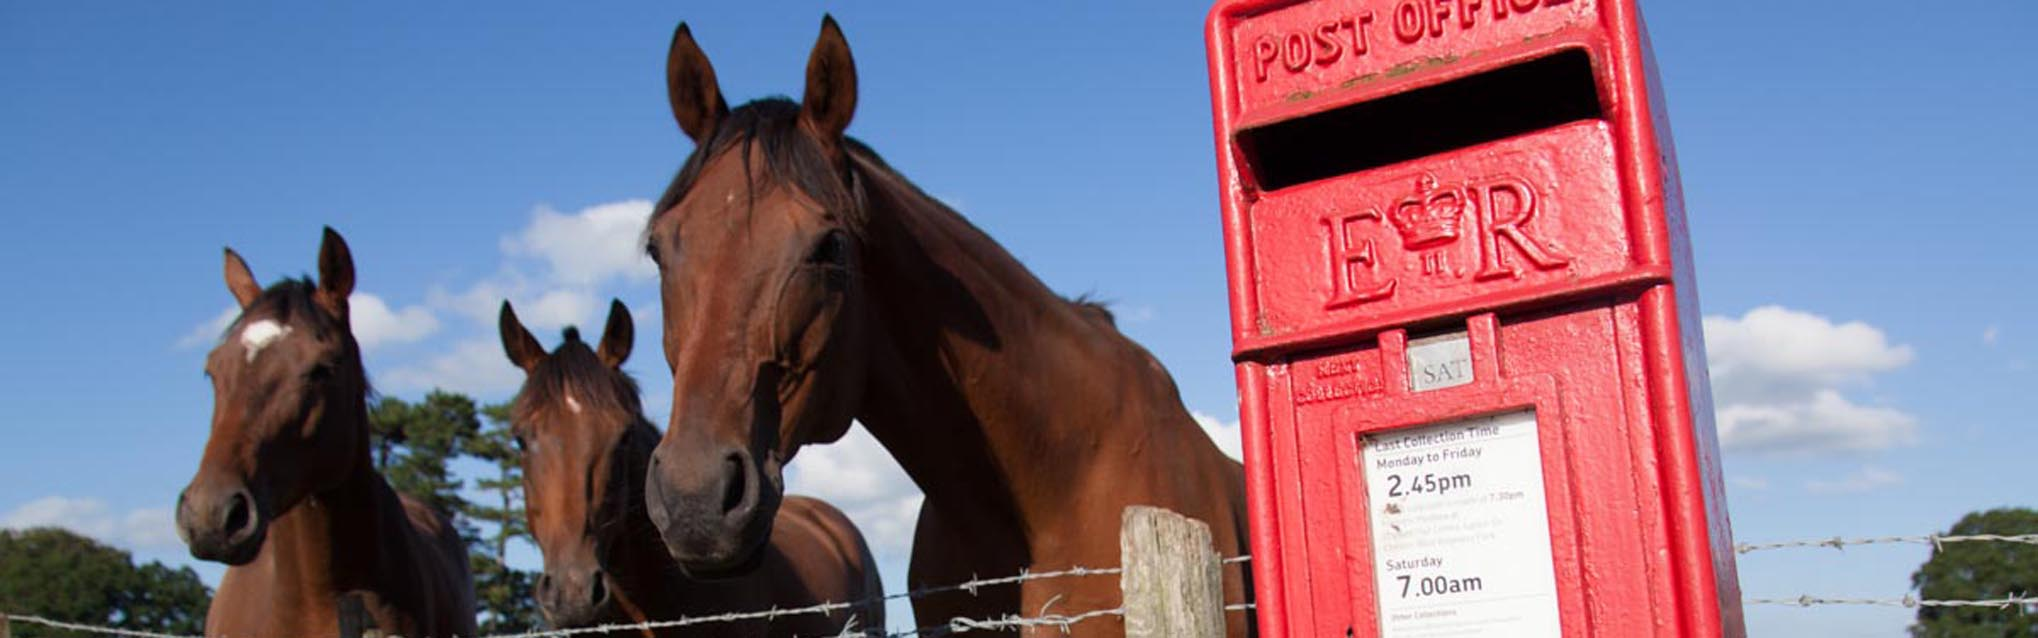 Village of Coddington, England. Picturesque view of a red Post Office letter post box with horses in the background.